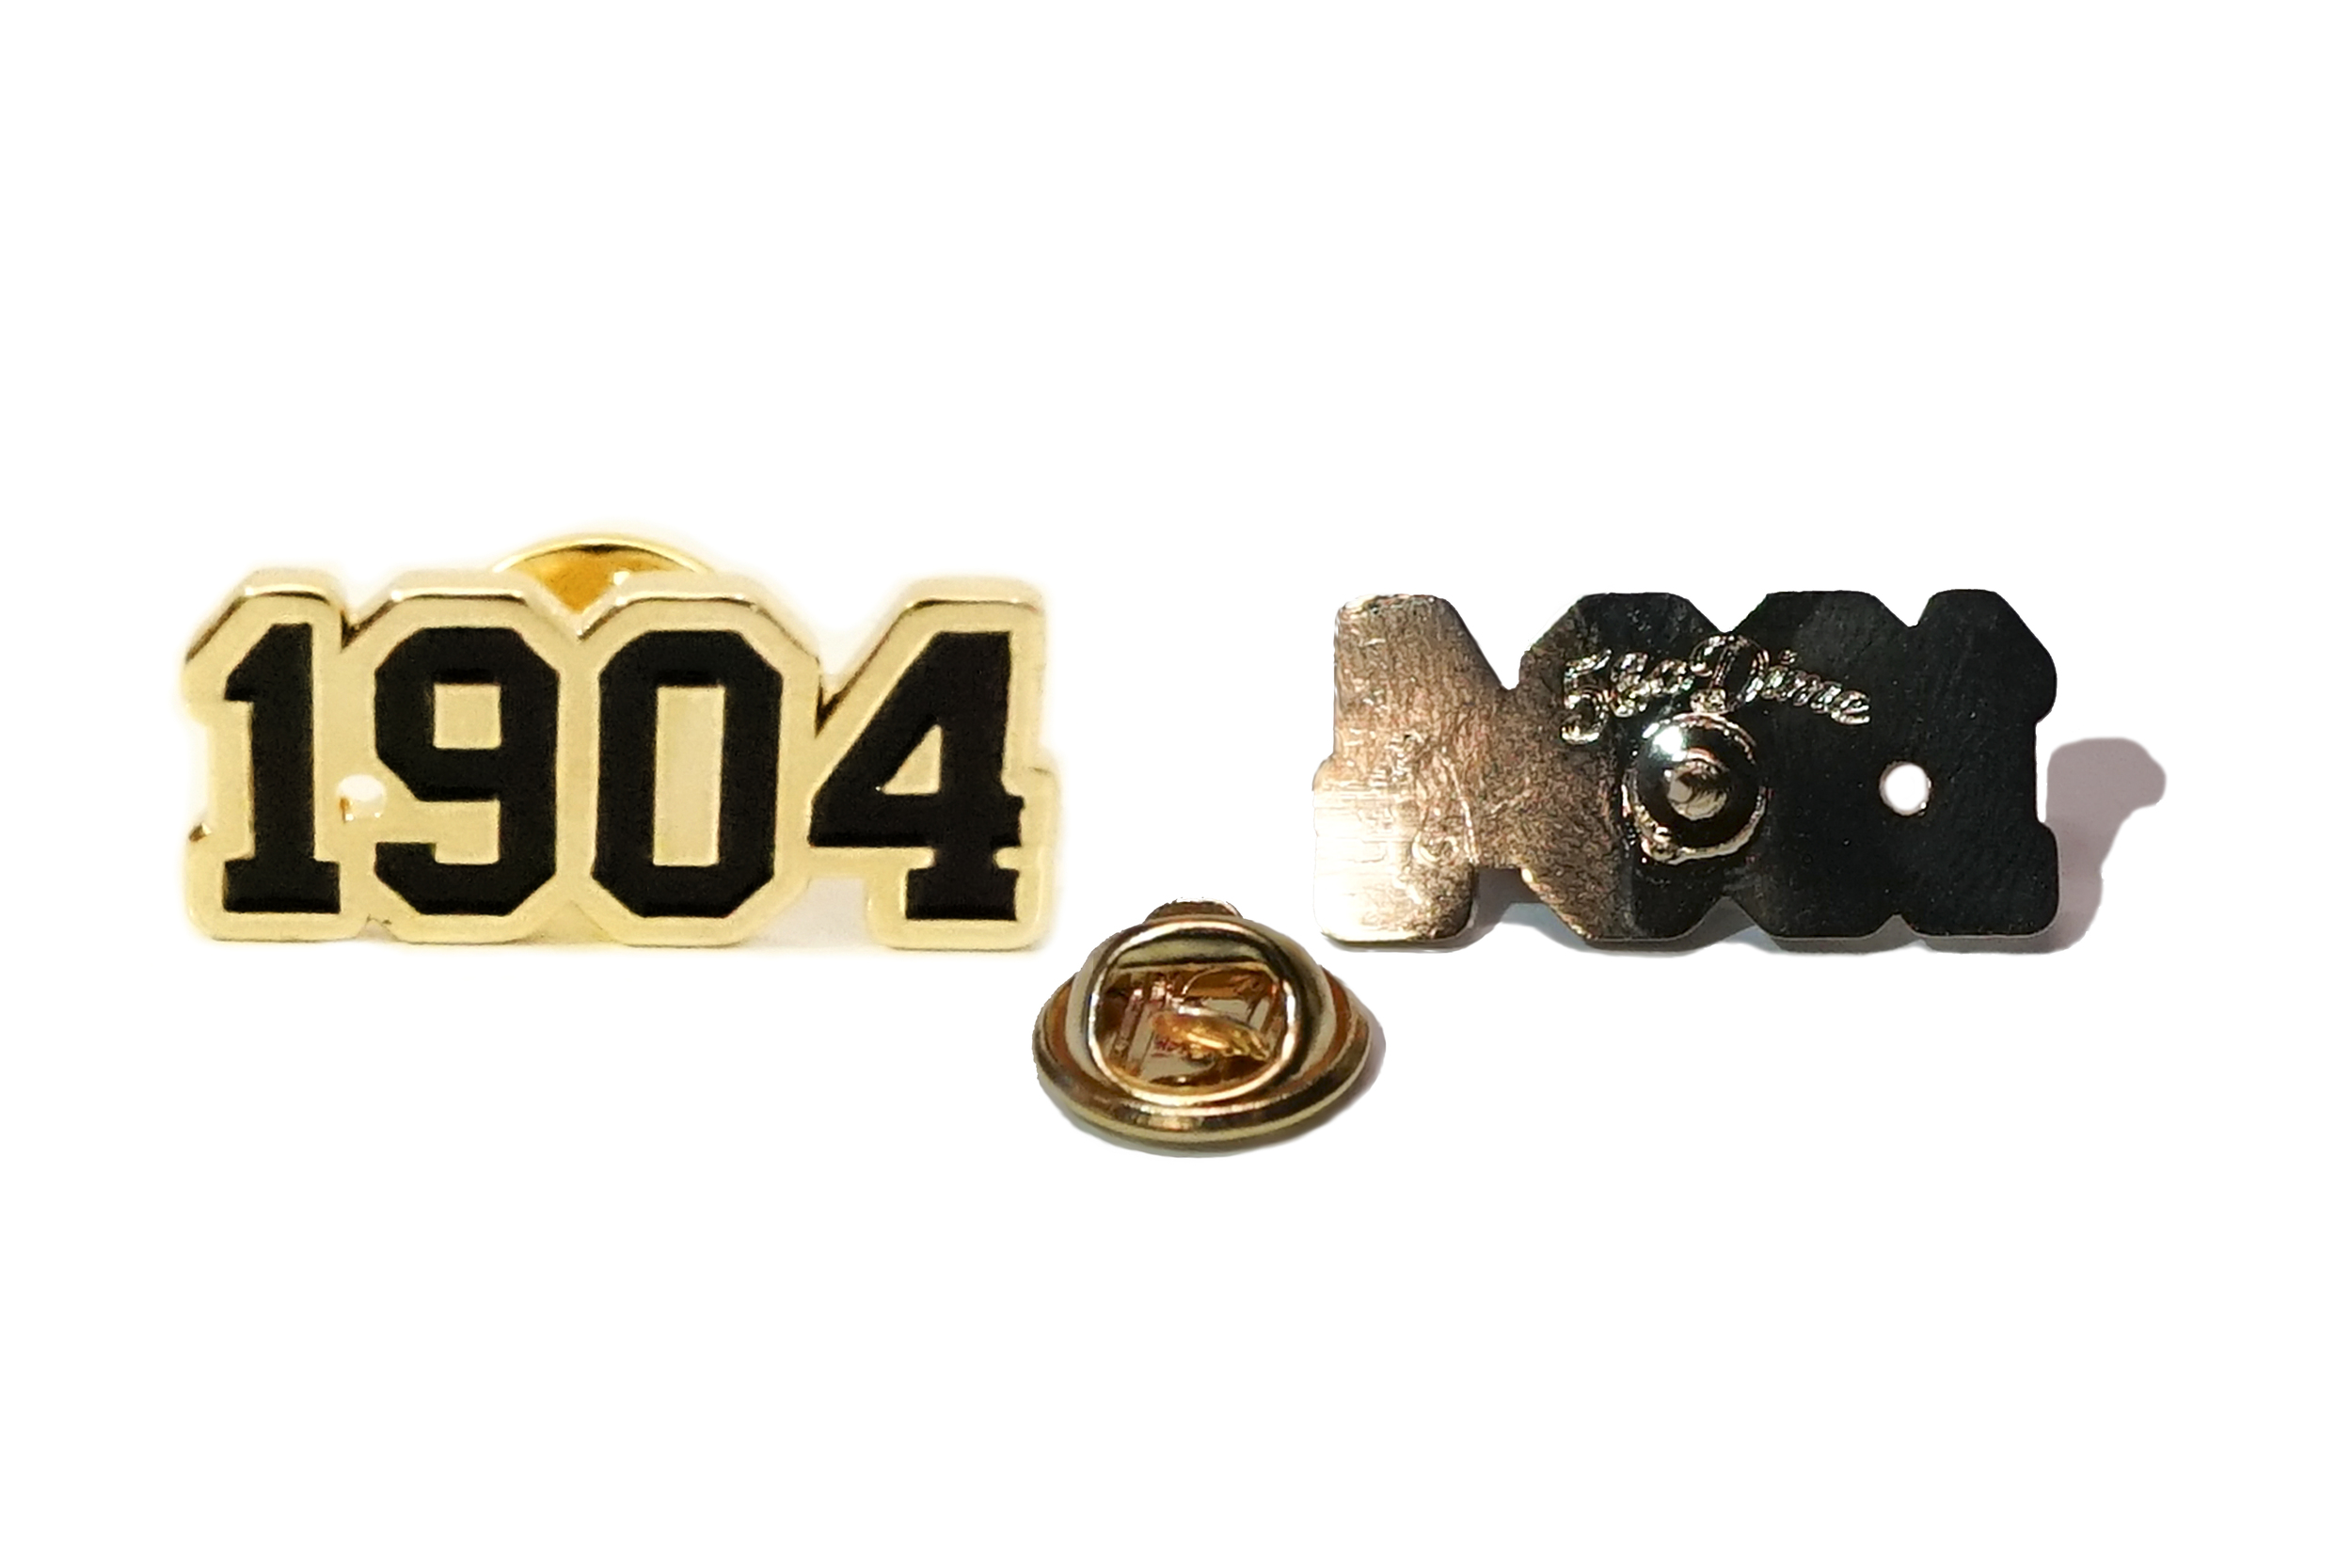 We have a bunch of new goods up in the store. My new favorite product is this black and gold 1904 pin. You can check out the rest by clicking our shop link... Or you can always stop by the new shop!